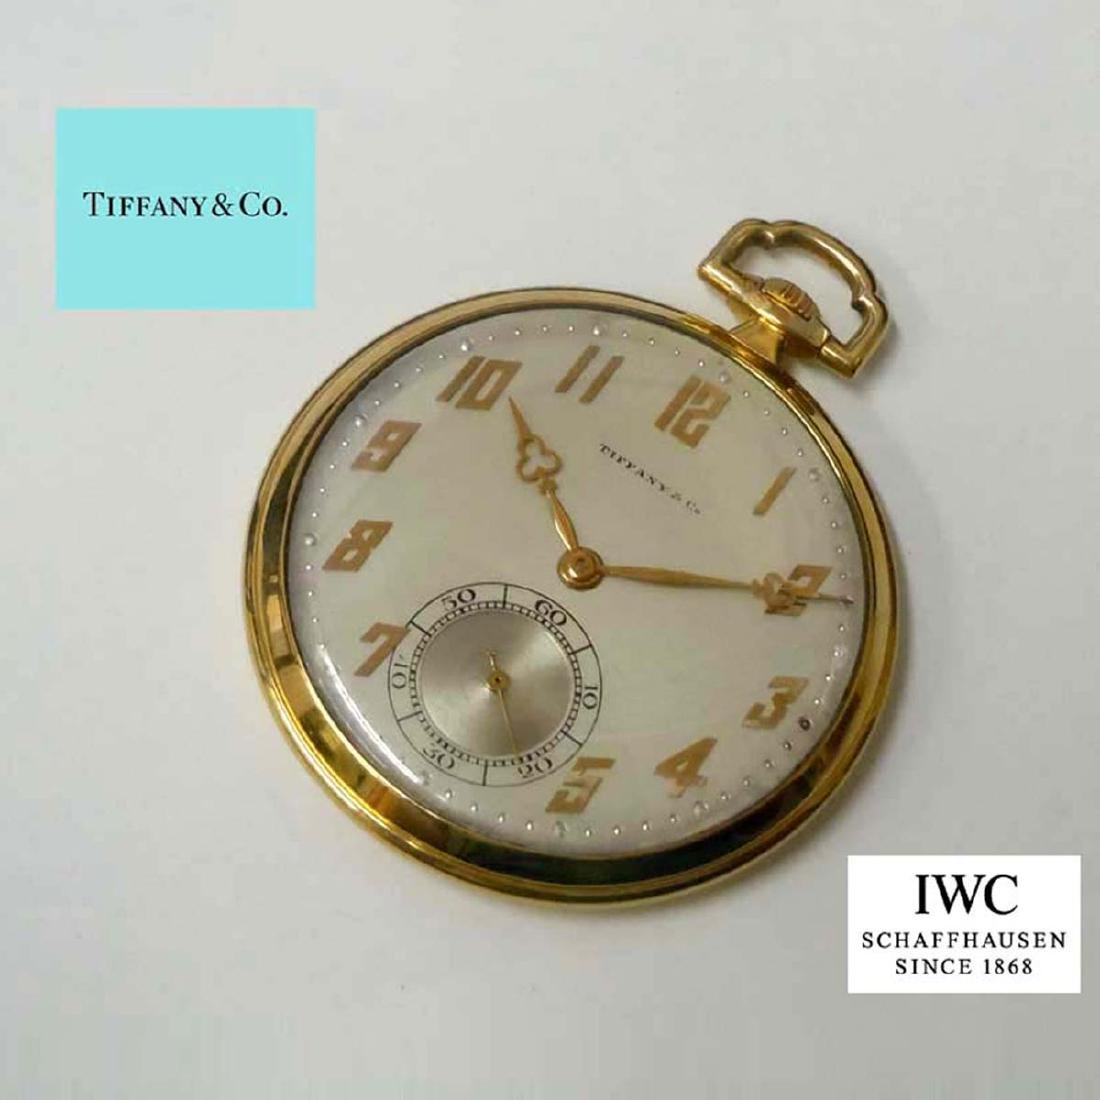 ART DECO 14KT GOLD IWC FOR TIFFANY & Co. POCKET WATCH ; - 2